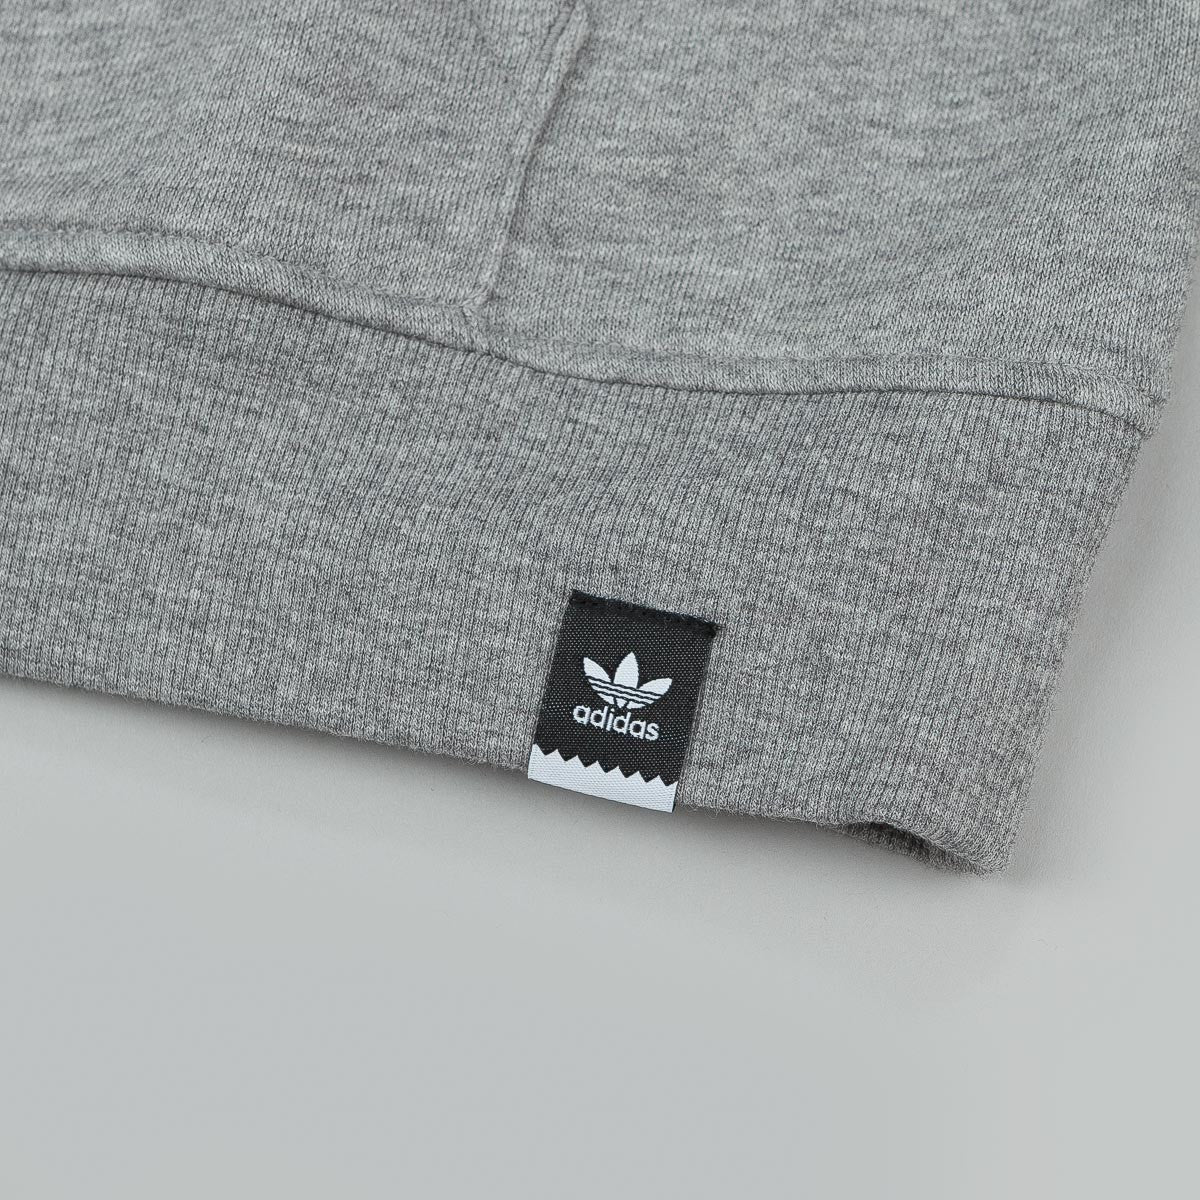 Adidas Adv Hooded Sweatshirt - Core Heather Grey / Faded Ink